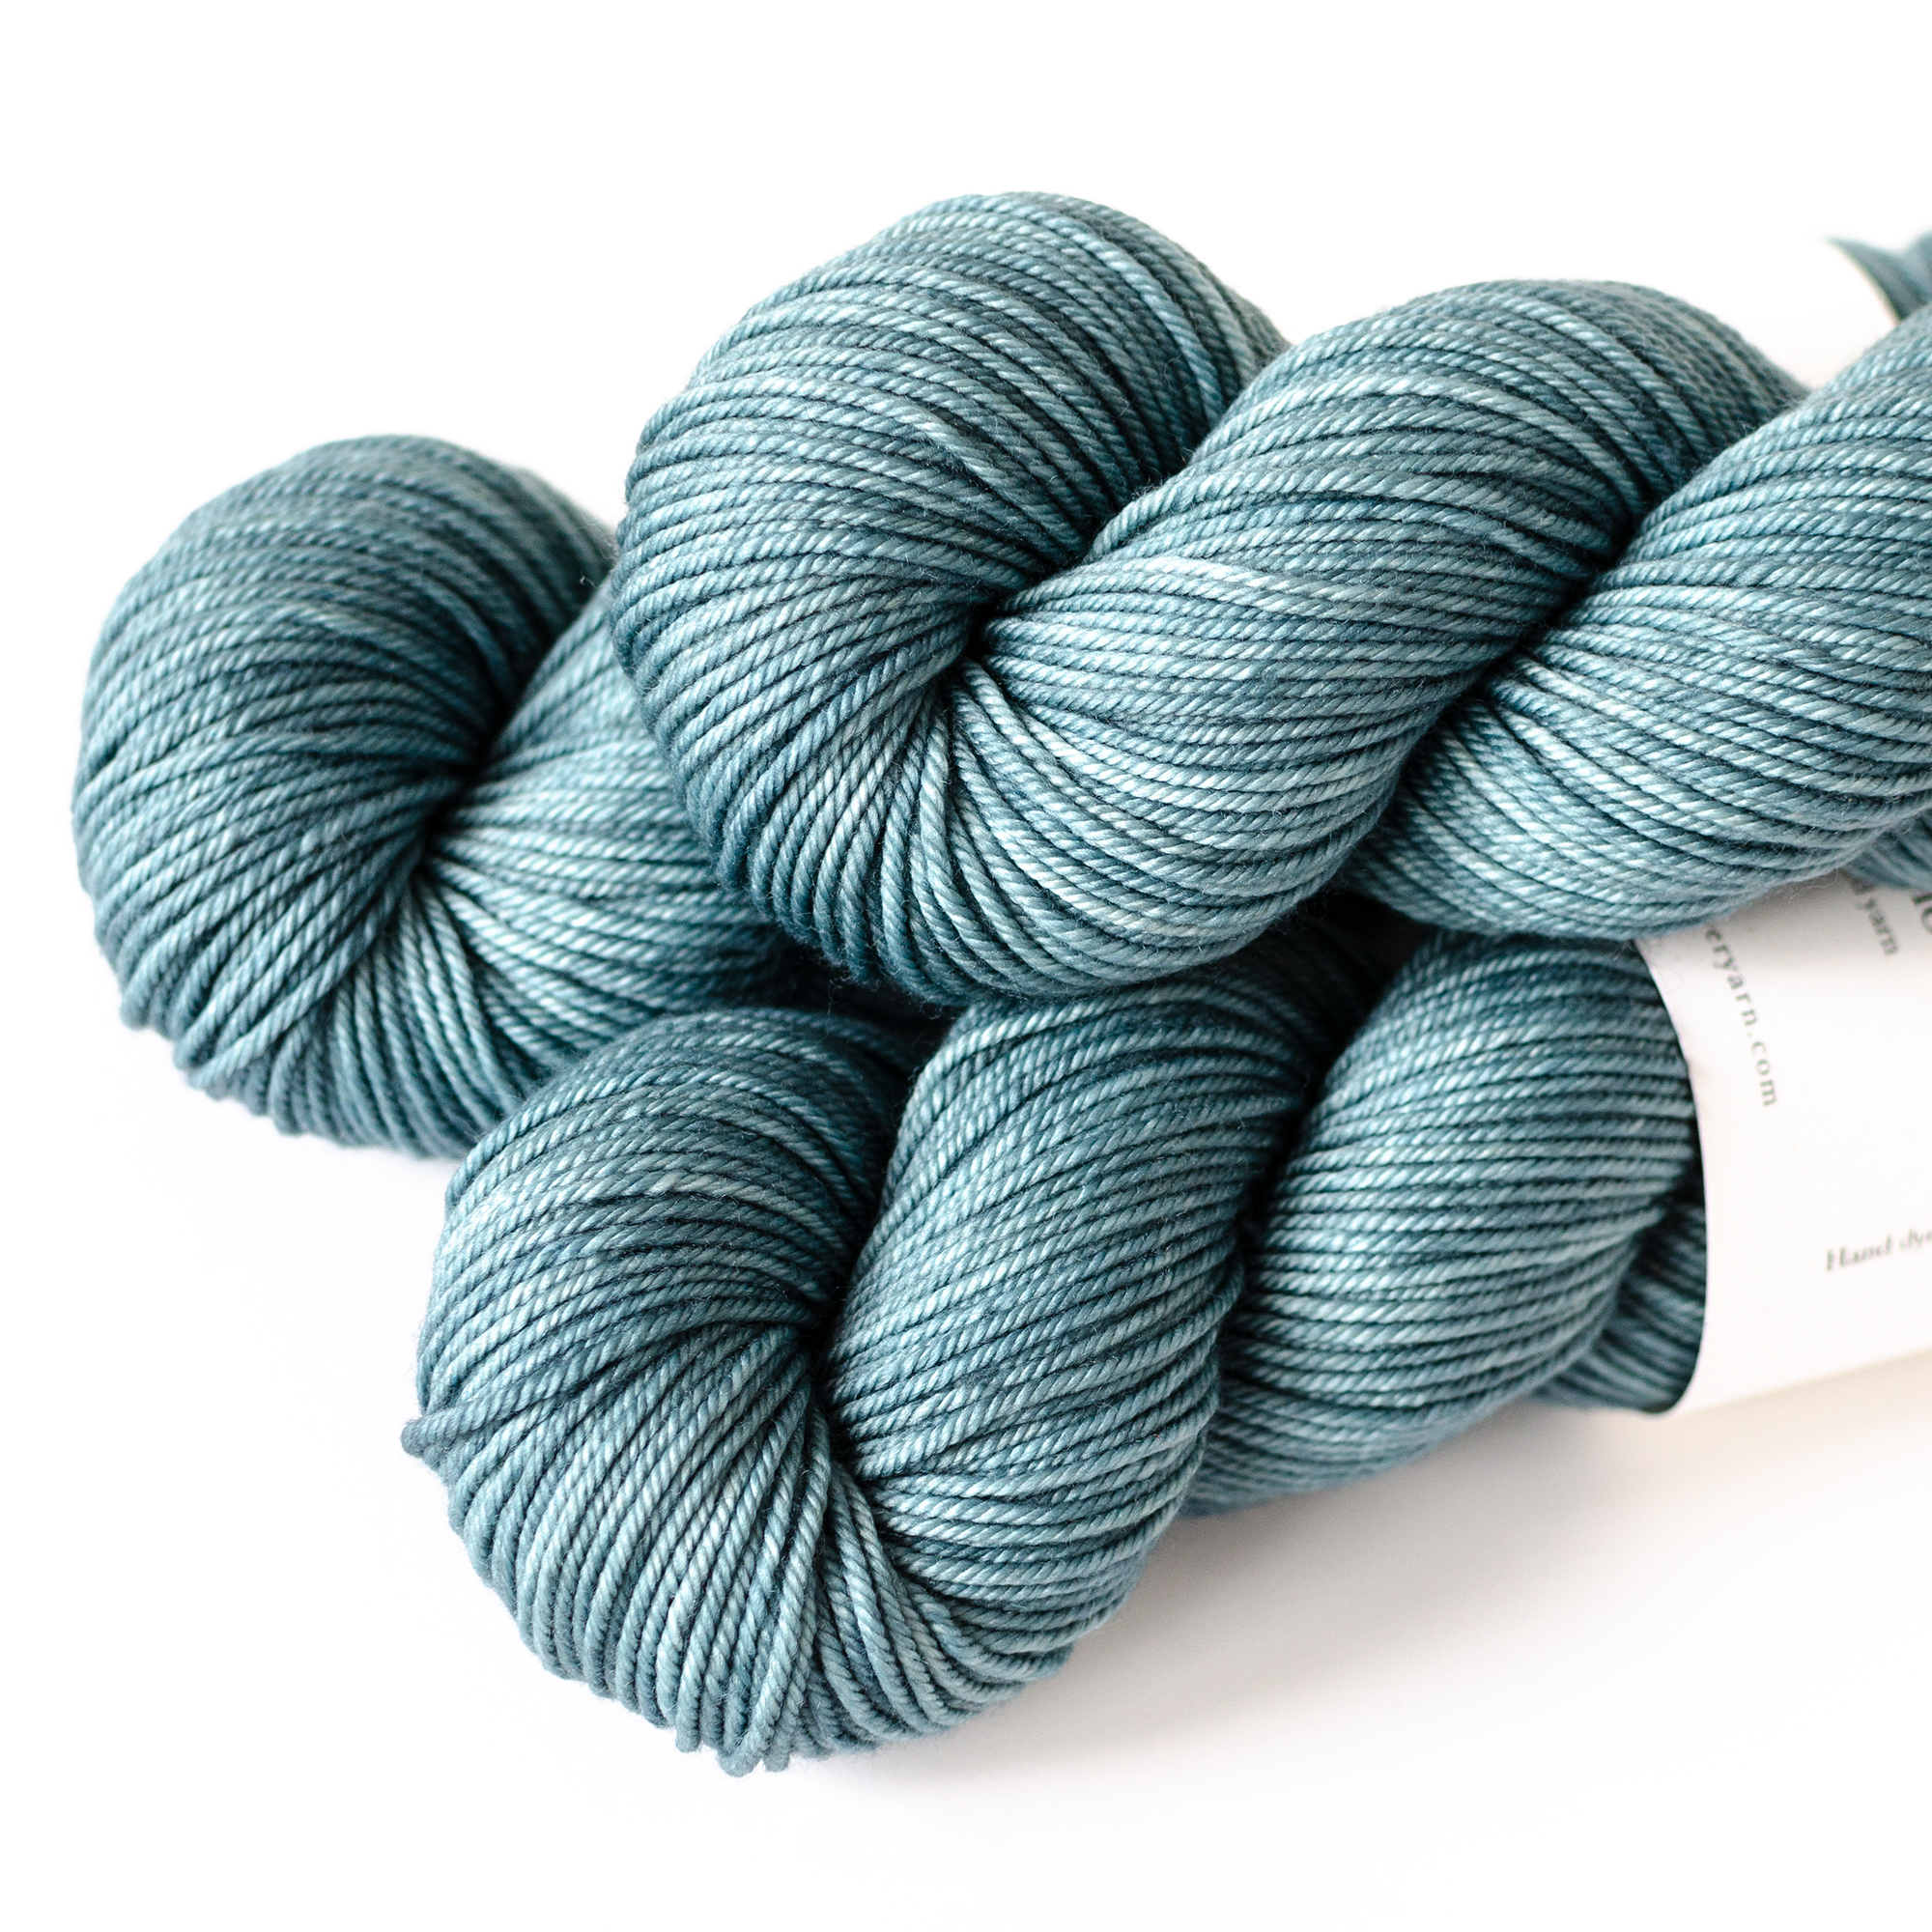 MCN Worsted - $29  80% SW Merino, 10% Cashmere, 10% Nylon  4 plies  225 yards / 206 meters  Worsted Weight  US 6-8 / 4-5mm  Hand wash / Dry flat  This is a soft and smooth yarn with drape. It has a firm twist and is a bit finer in thickness than the SW Merino Worsted base.